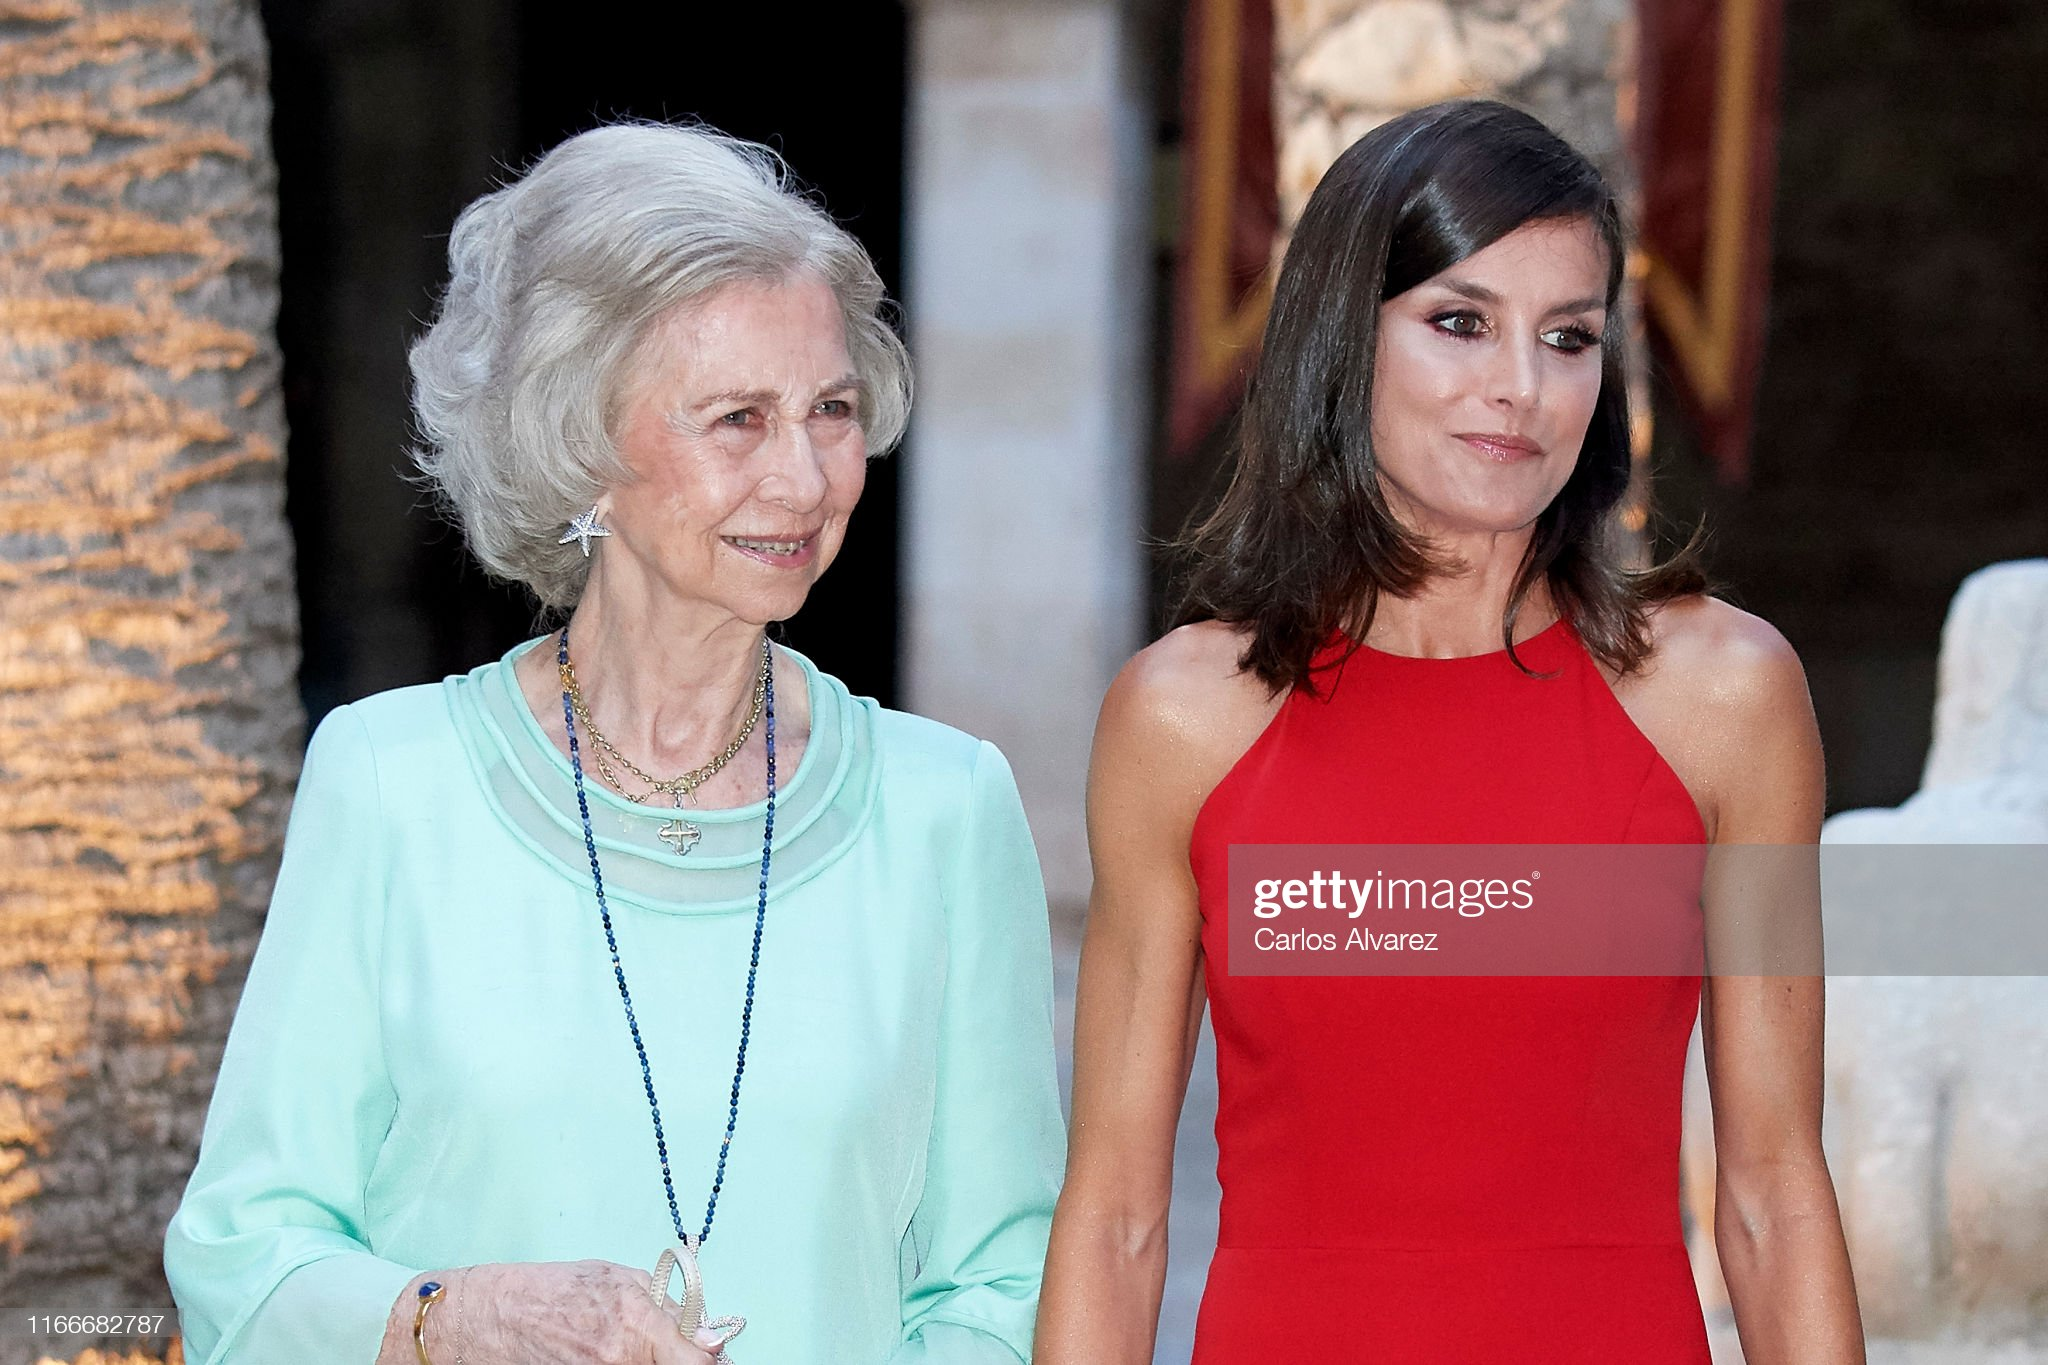 https://media.gettyimages.com/photos/queen-letizia-of-spain-and-queen-sofia-host-a-dinner-for-authorities-picture-id1166682787?s=2048x2048